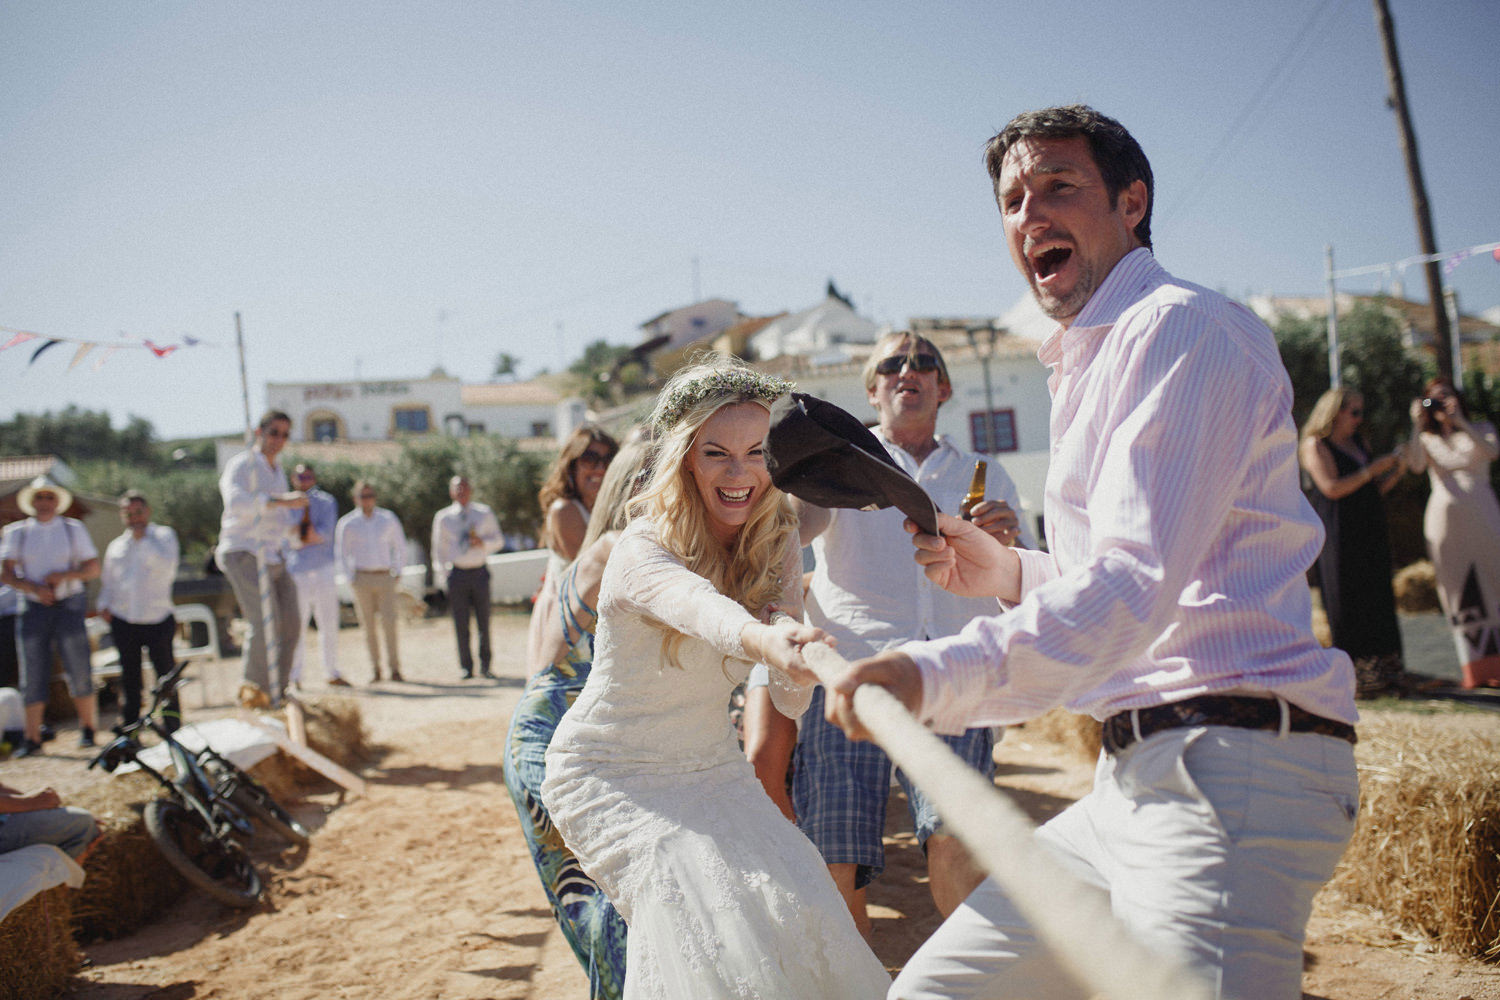 fun fair wedding aldeira da pedralva portugal wedding photographer